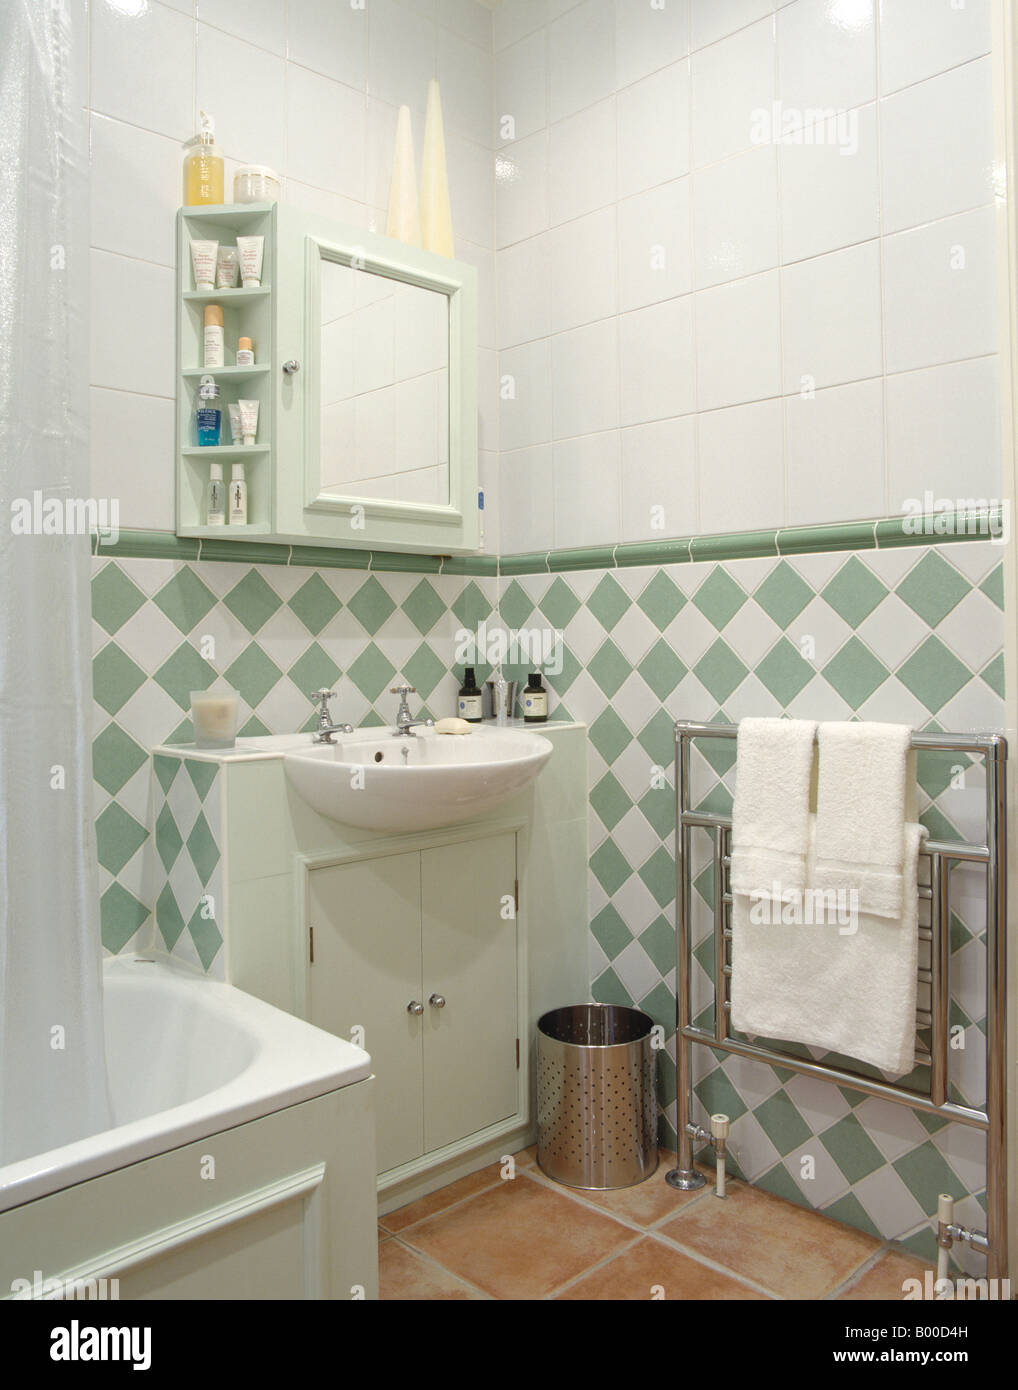 Green And White Tiles Below Dado In Modern White Bathroom With Built In  Basin And Chrome Towel Rail